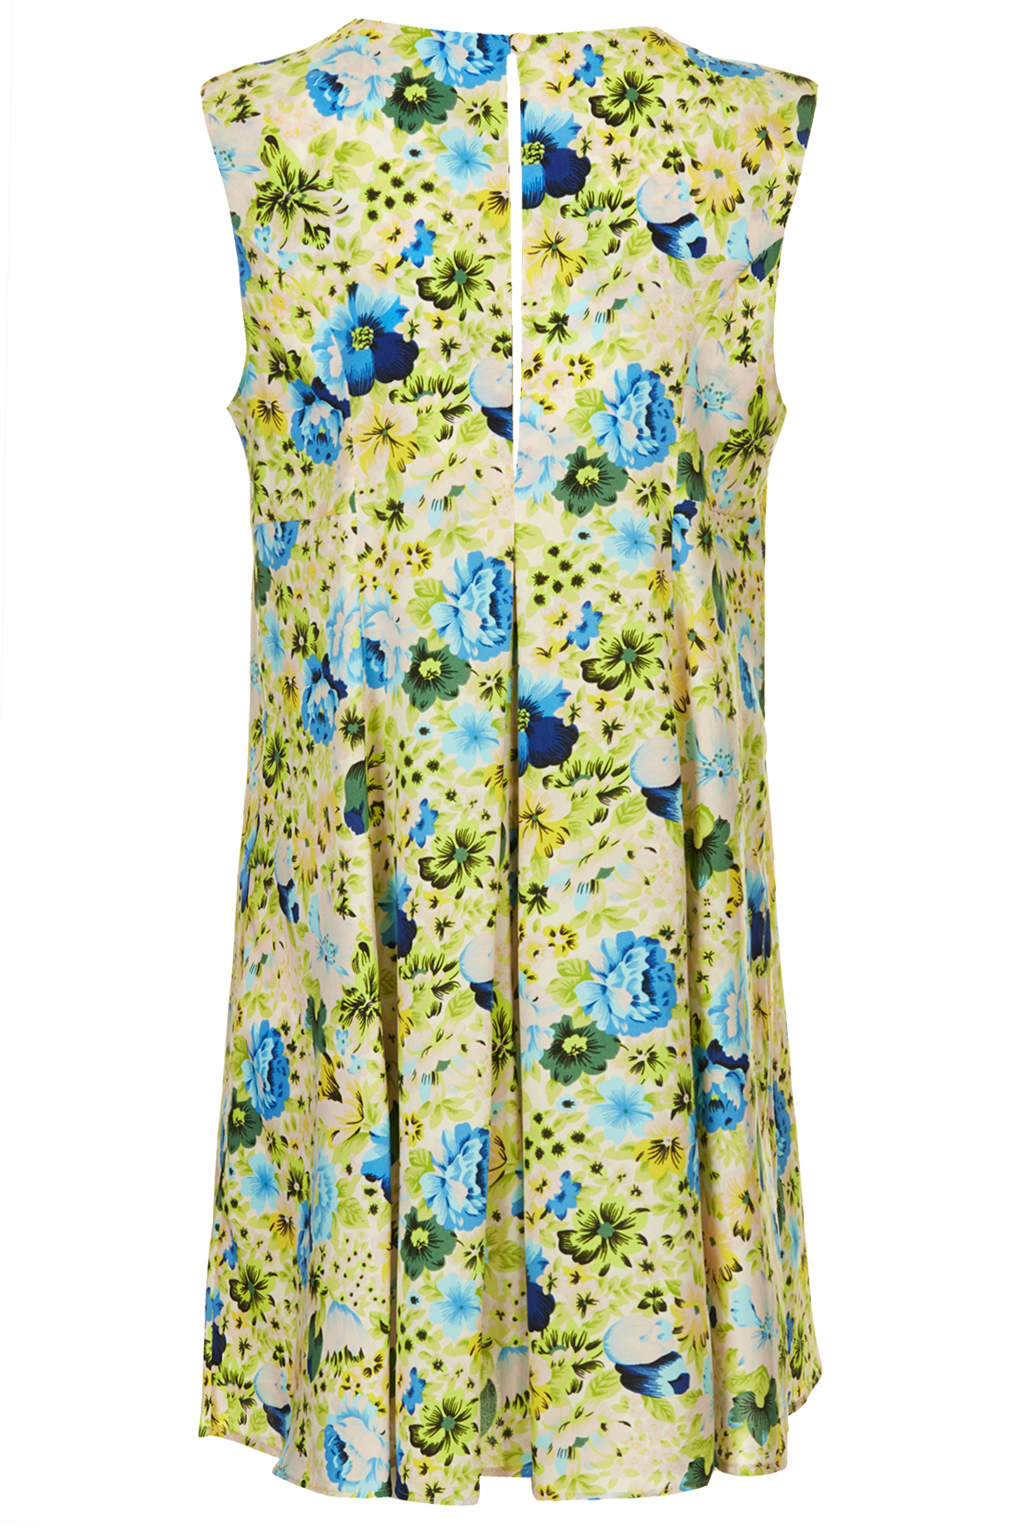 Lyst topshop womens maternity floral swing dress green in green gallery womens swing dresses ombrellifo Image collections